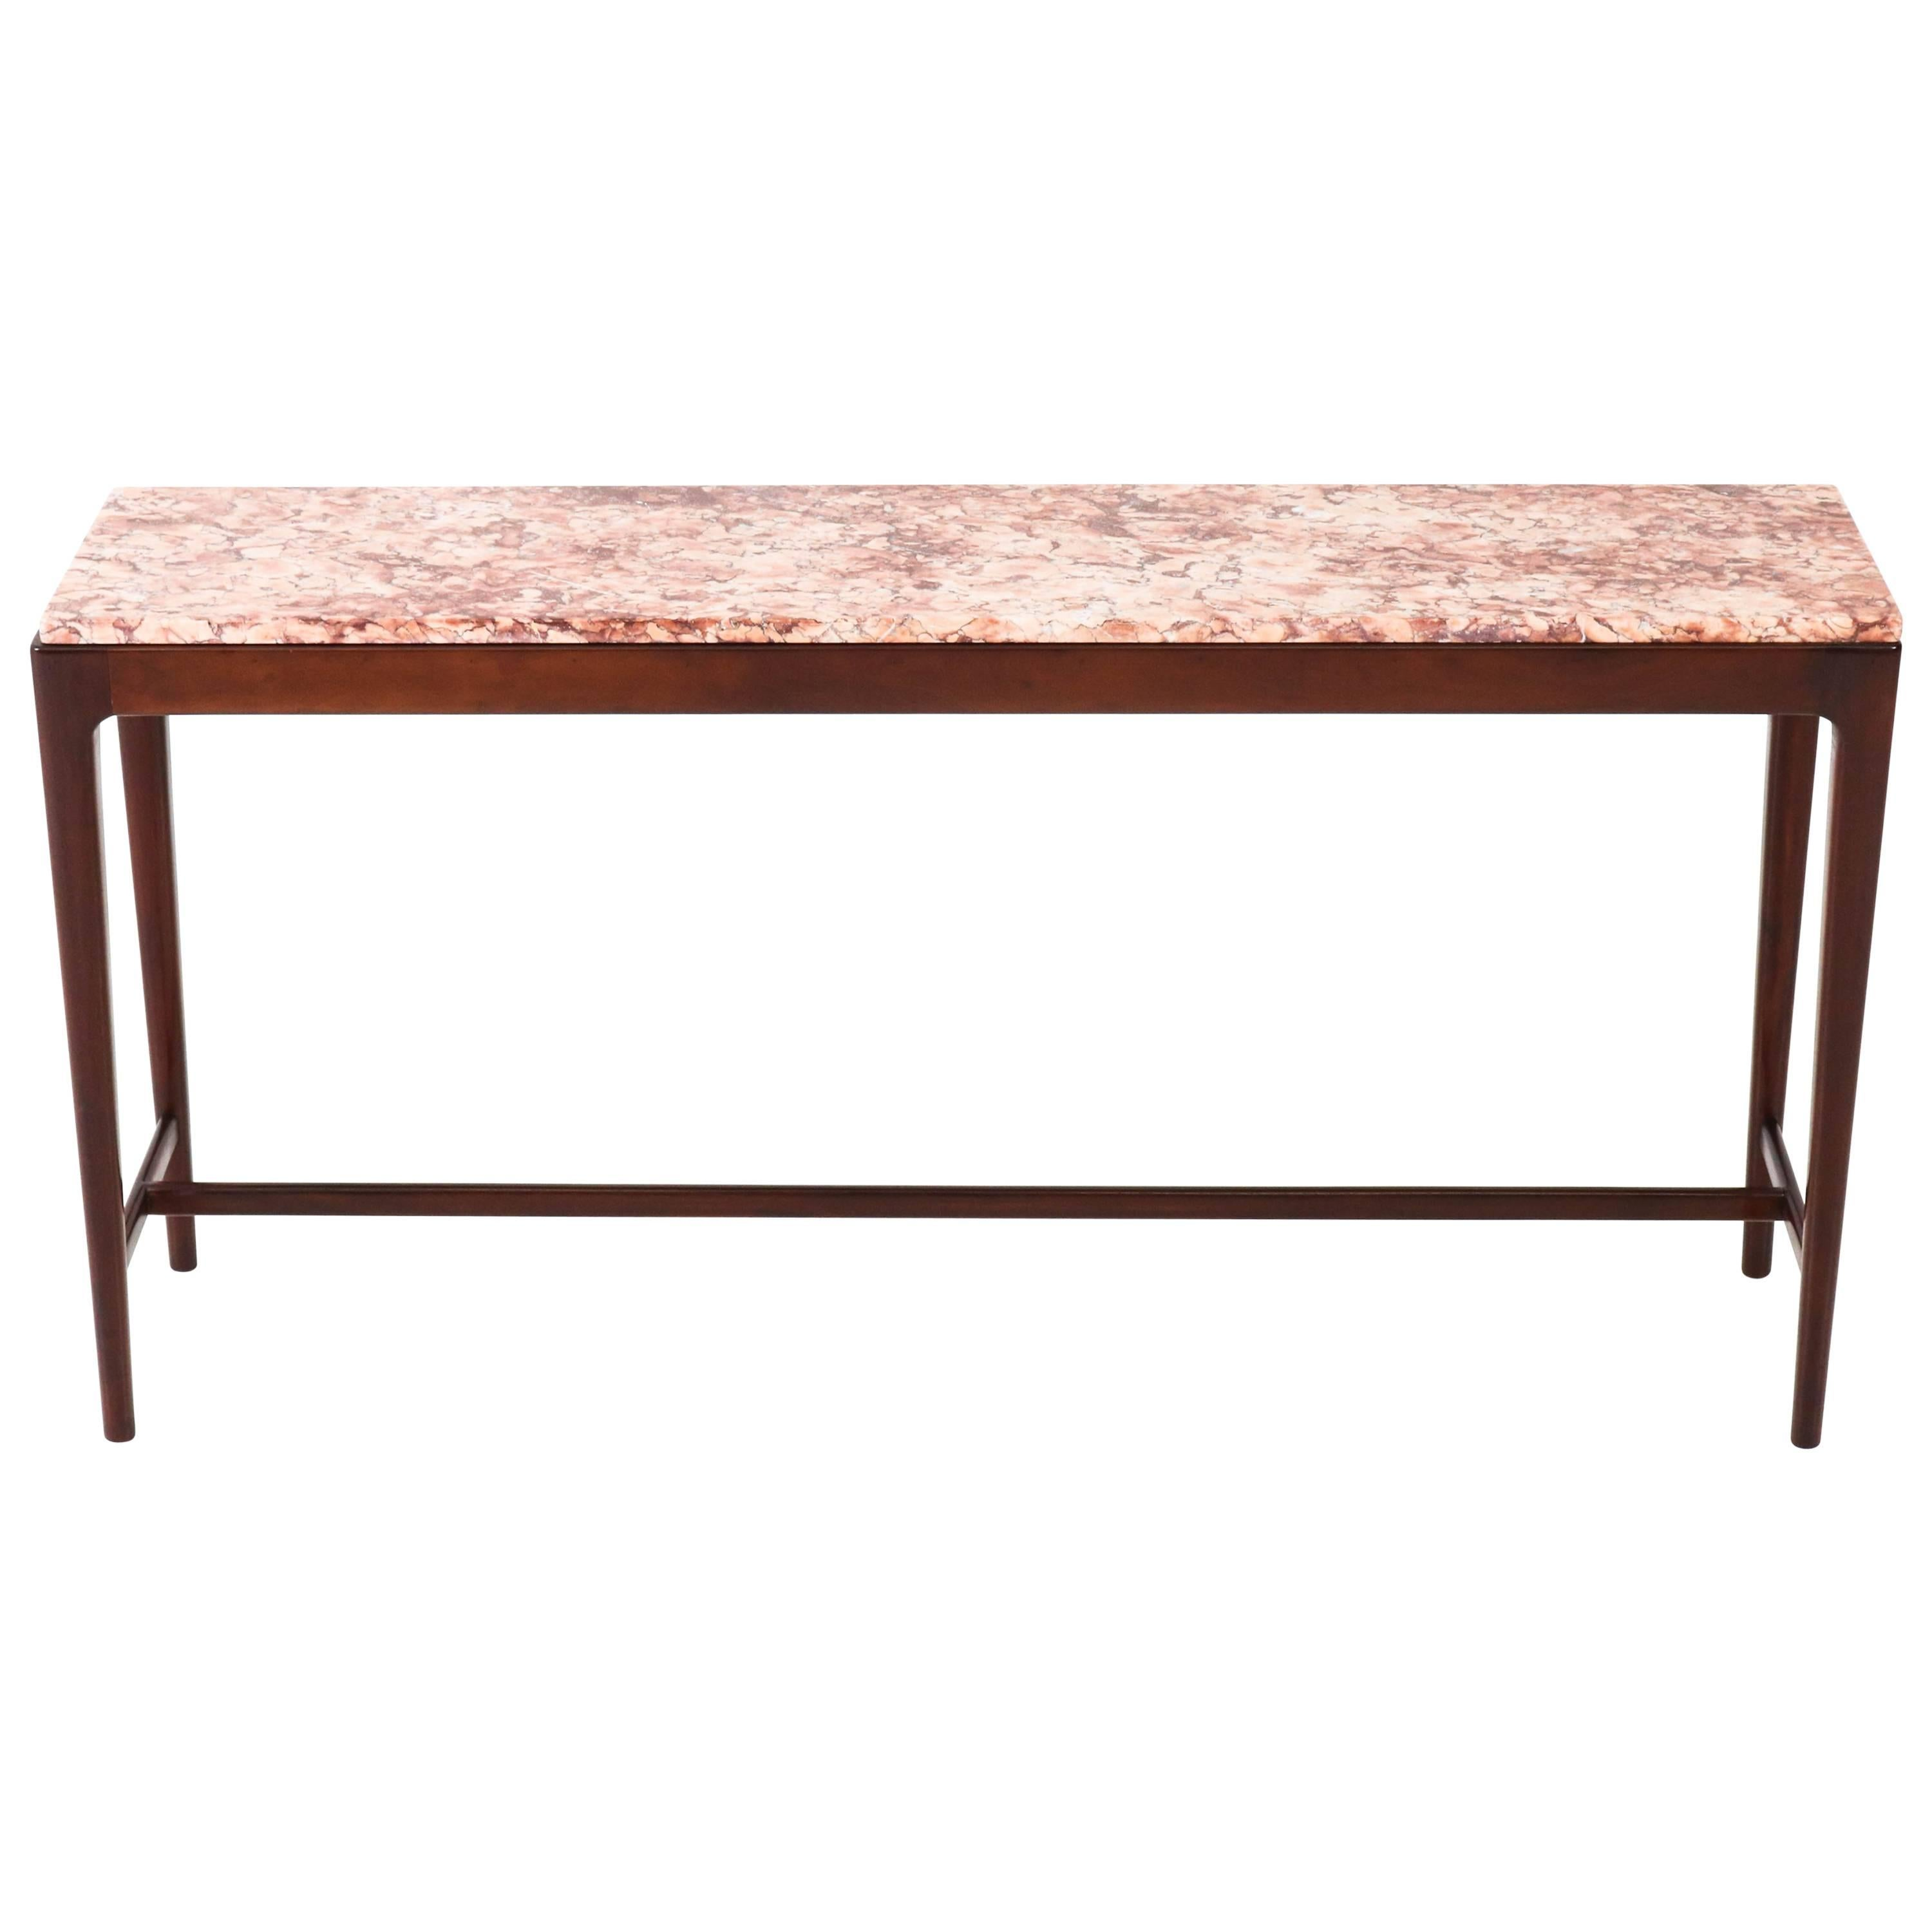 Mid Century Modern Danish Mahogany Console Table With Marble Top, 1960s 1